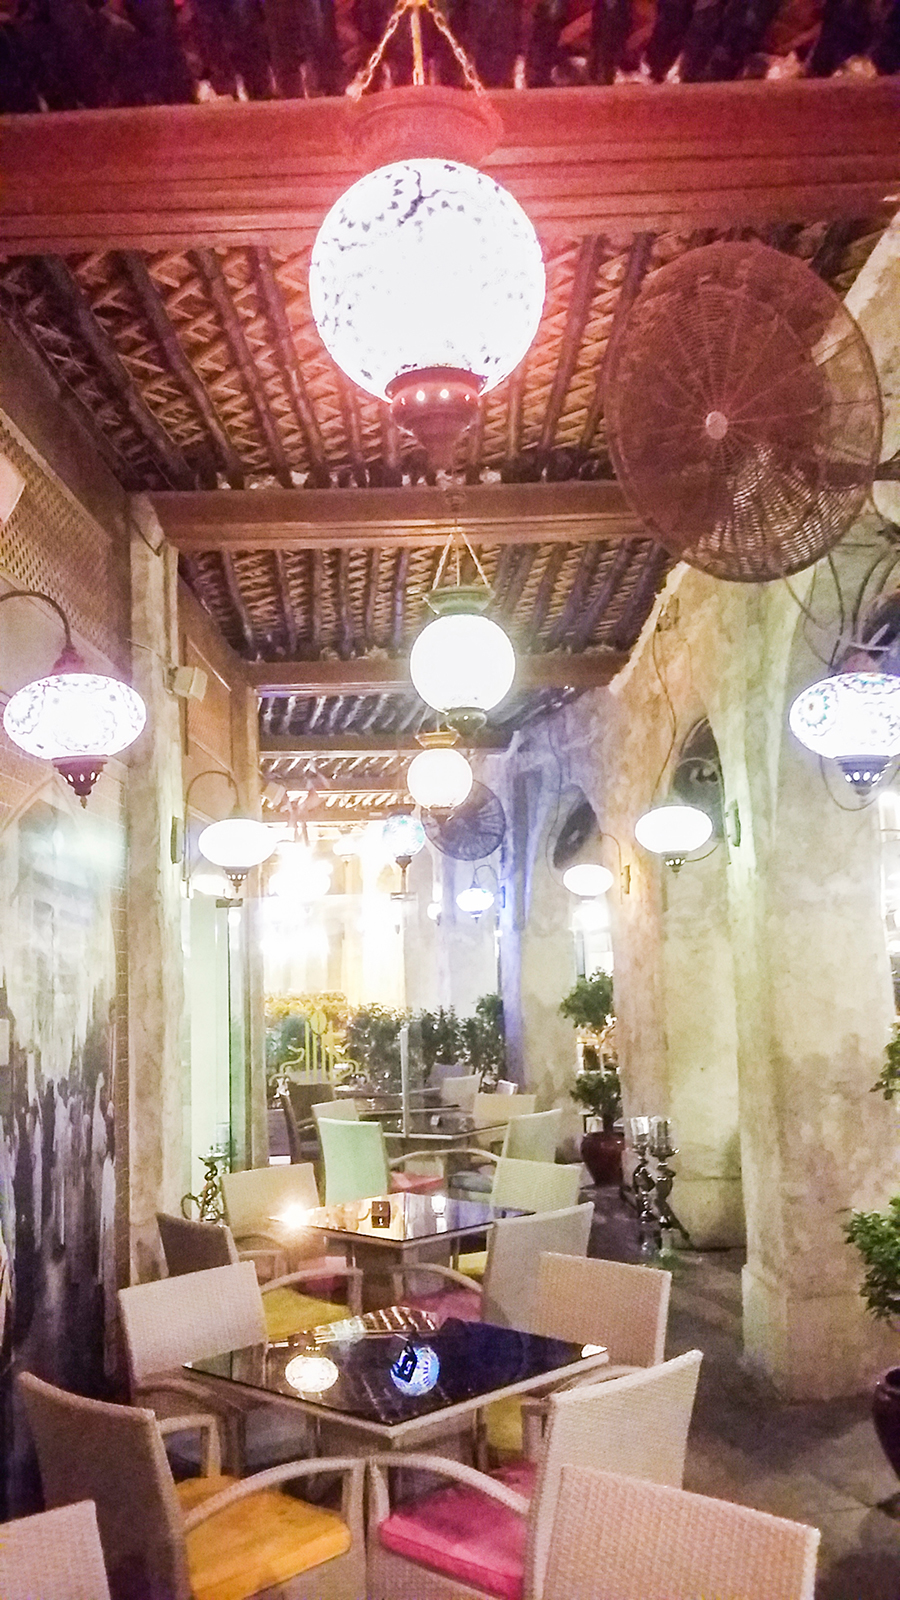 Cafe at Souq Waqif (سوق واقف), Doha, Qatar.